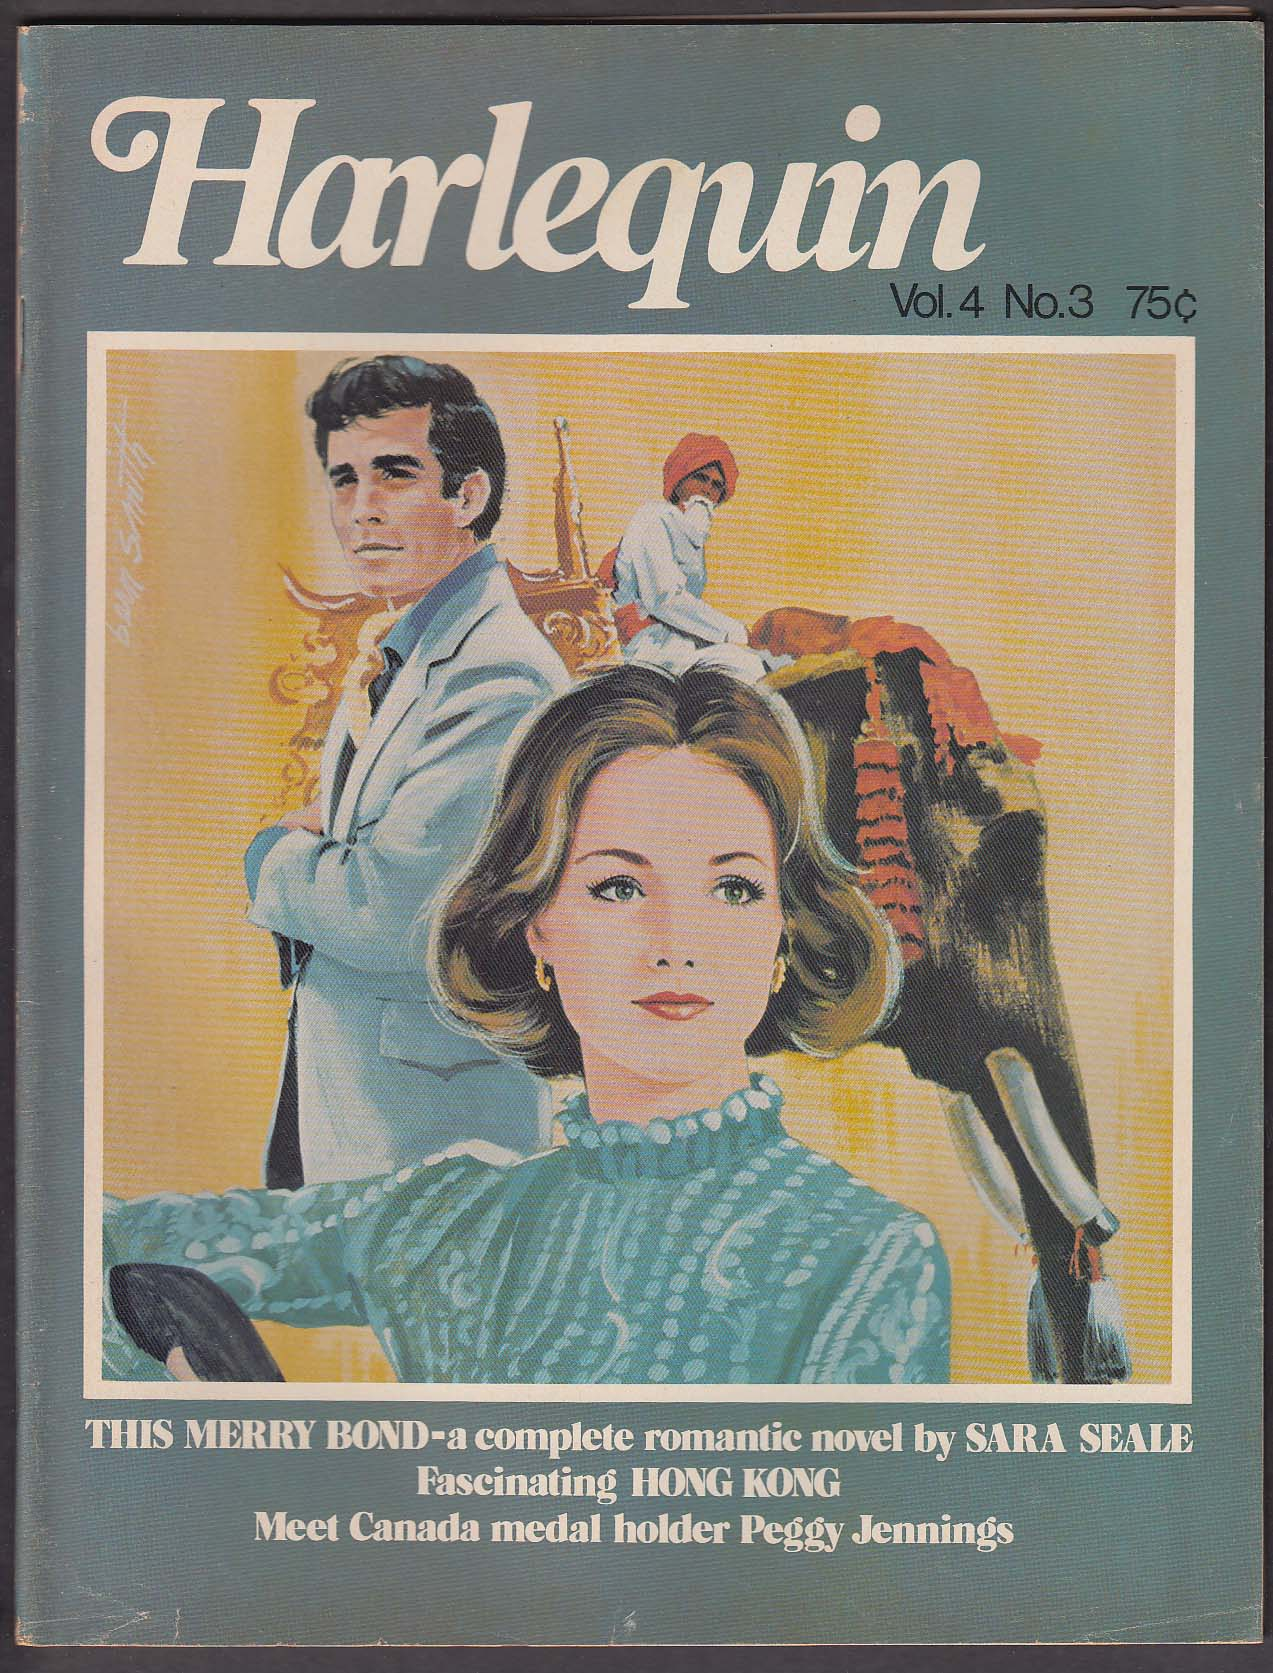 Image for HARLEQUIN V4 #3 Sara Seale Peggy Jennings Mary Lou Healy + 1976